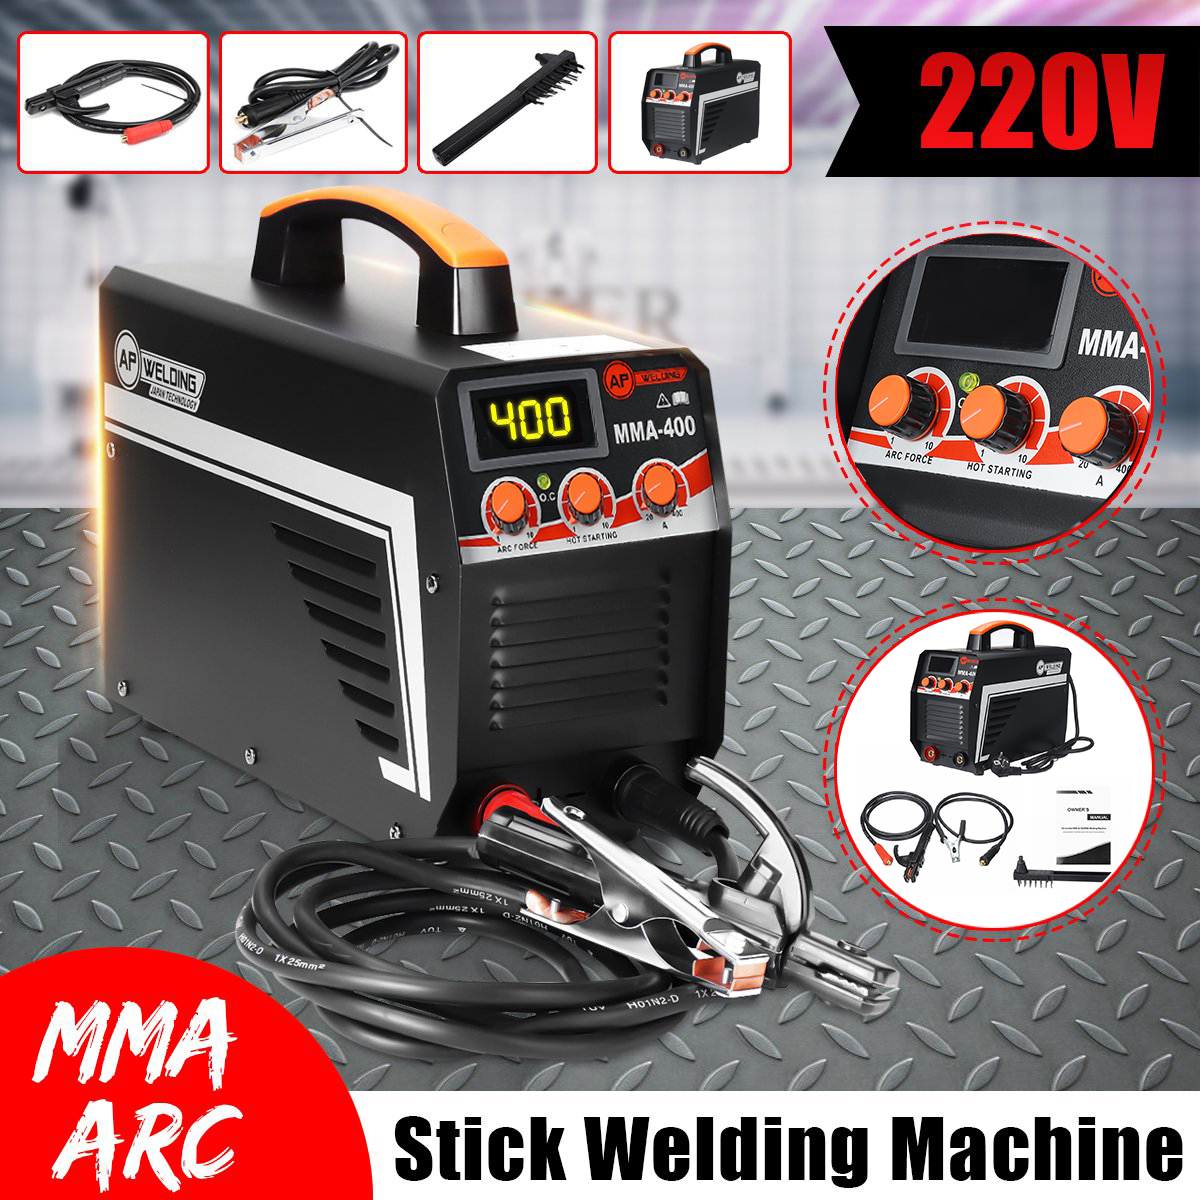 New IGBT Inverter Arc Electric Welding Machine MMA-400 220V Digital Display Arc Stick Welders Set For DIY Home Welding Working